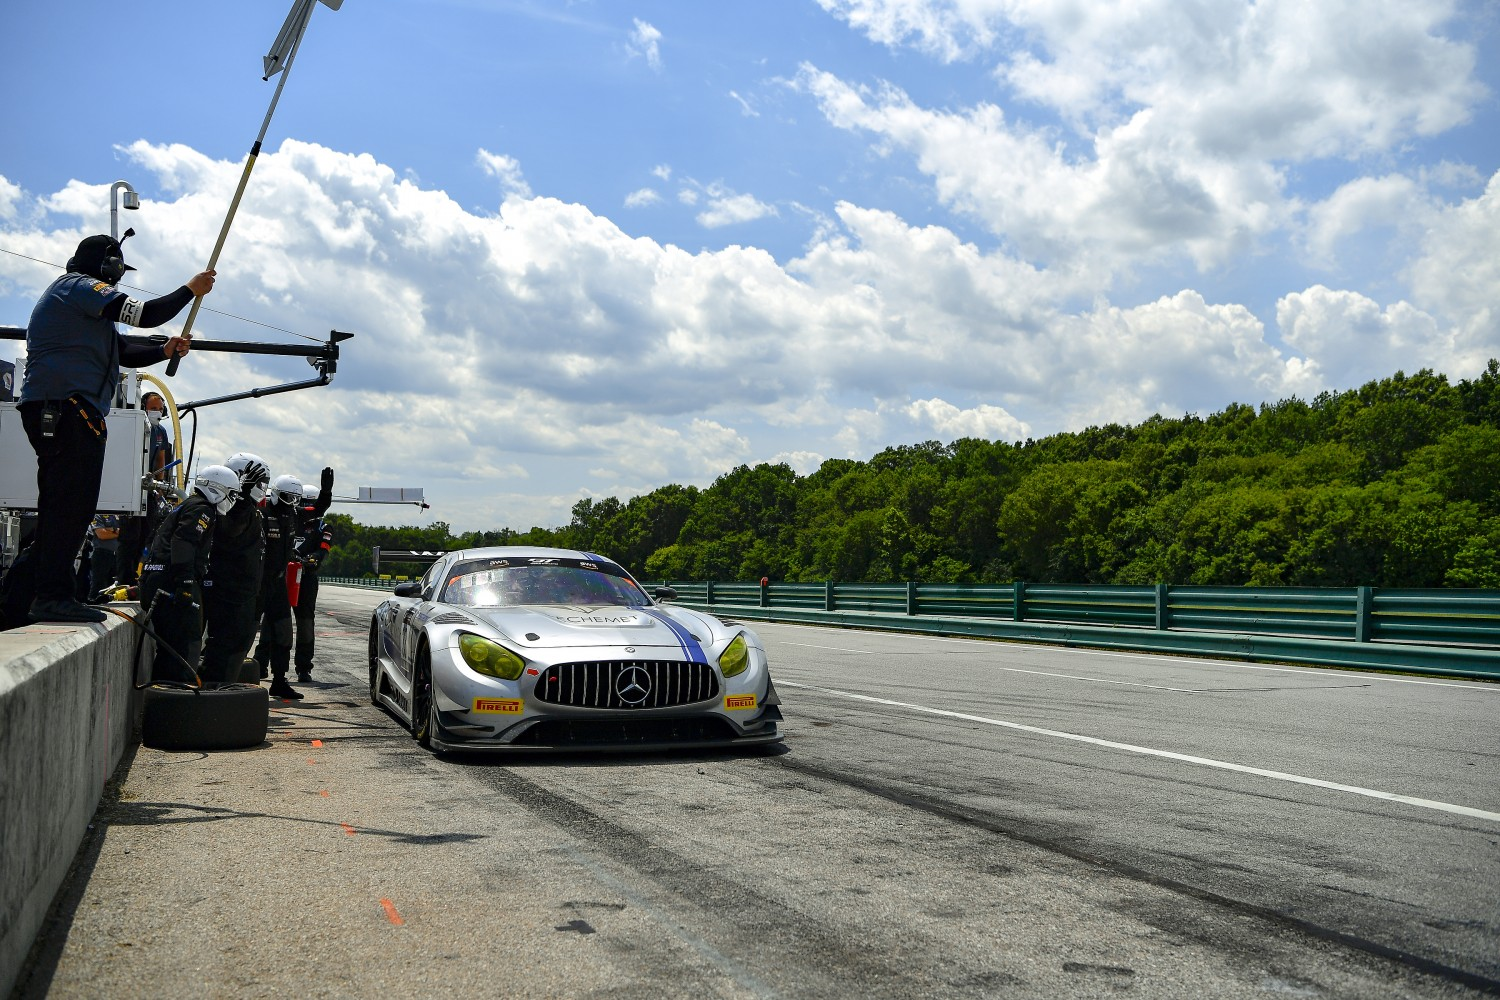 #33 GT3 Pro-Am, Winward Racing, Kris Wilson, Russell Ward, Mercedes-AMG GT3, 2020 SRO Motorsports Group - VIRginia International Raceway, Alton VA  | SRO Motorsports Group